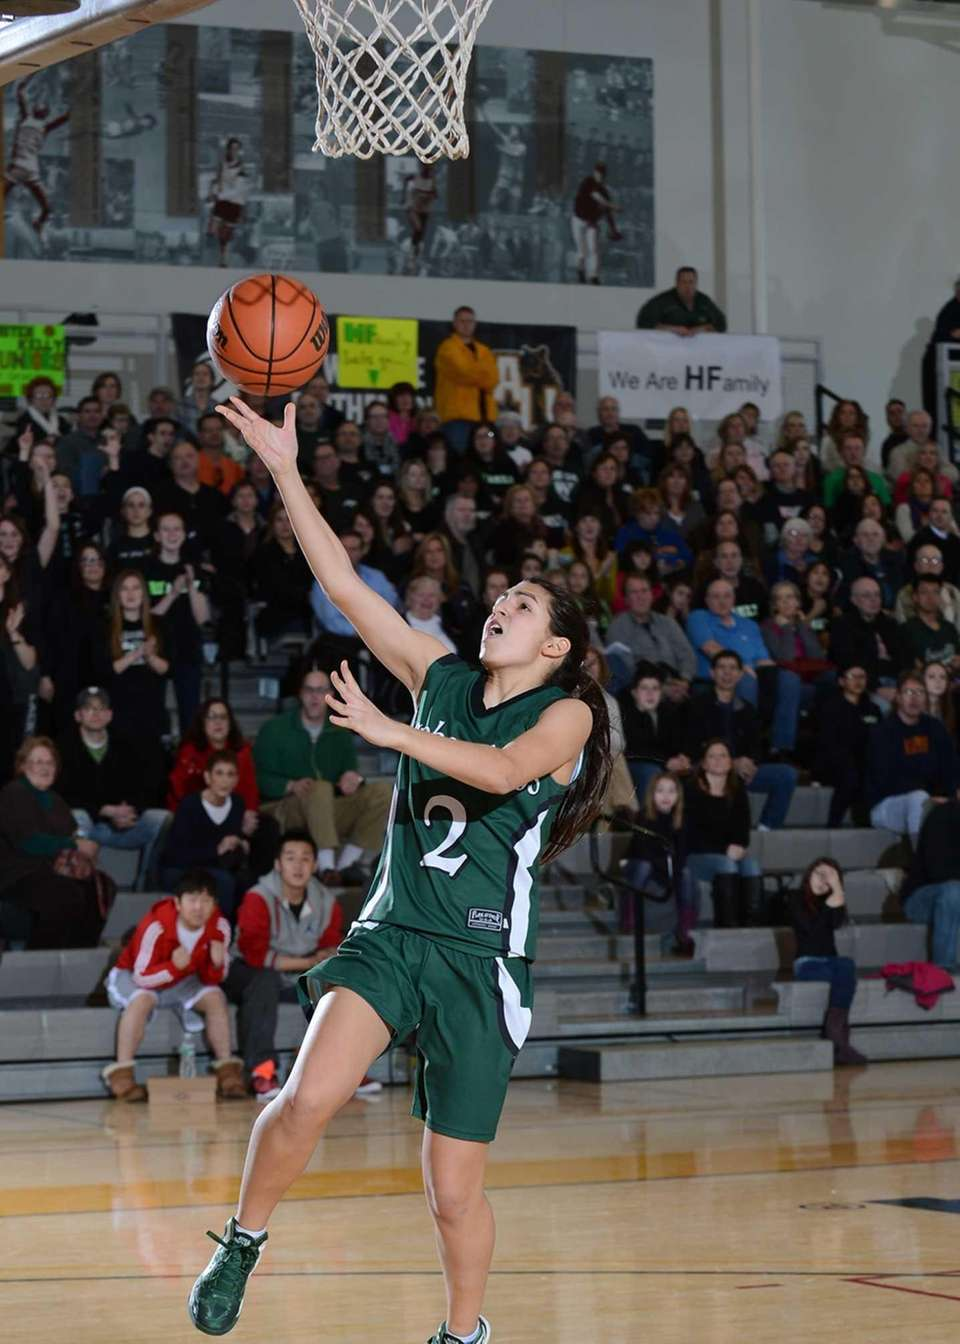 Harborfield's Amy Luxemberg (2) with the breakaway layup